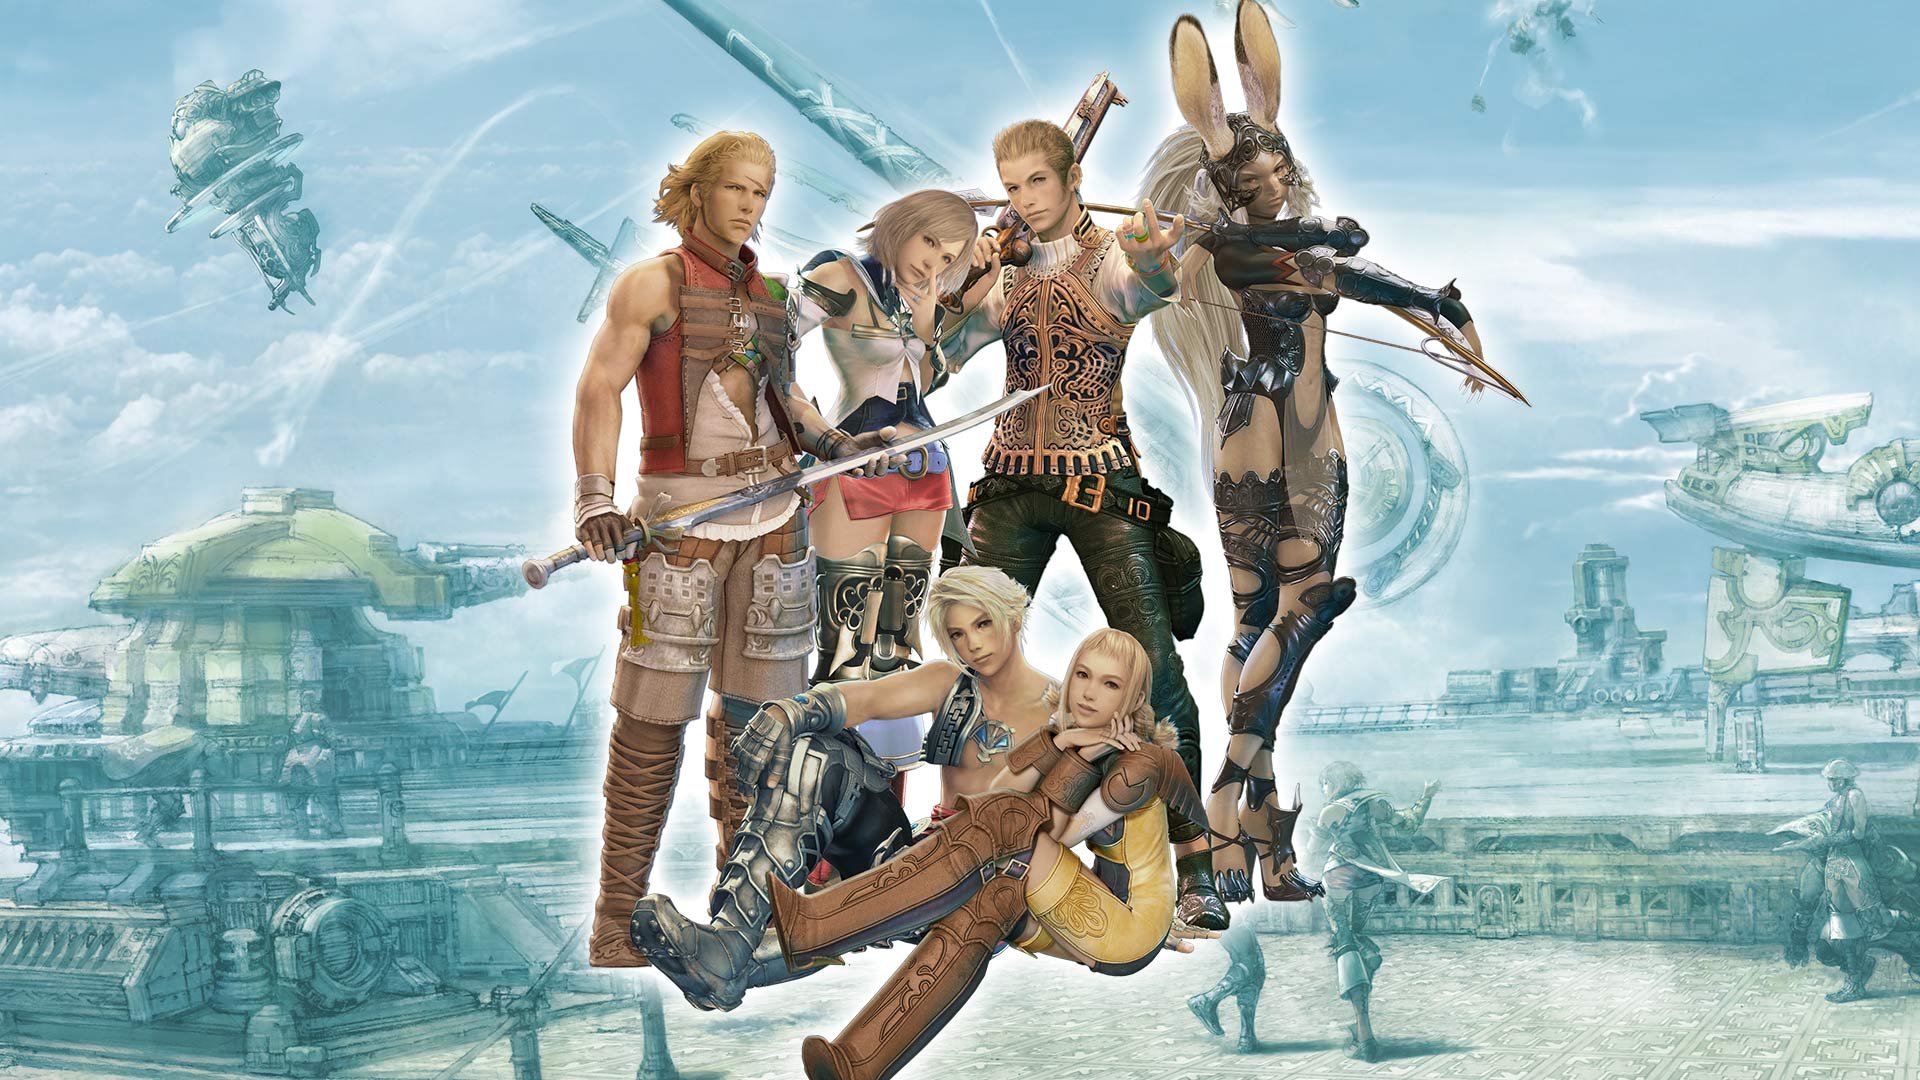 Final Final Fantasy 12 The Zodiac Age 1449656 Hd Wallpaper